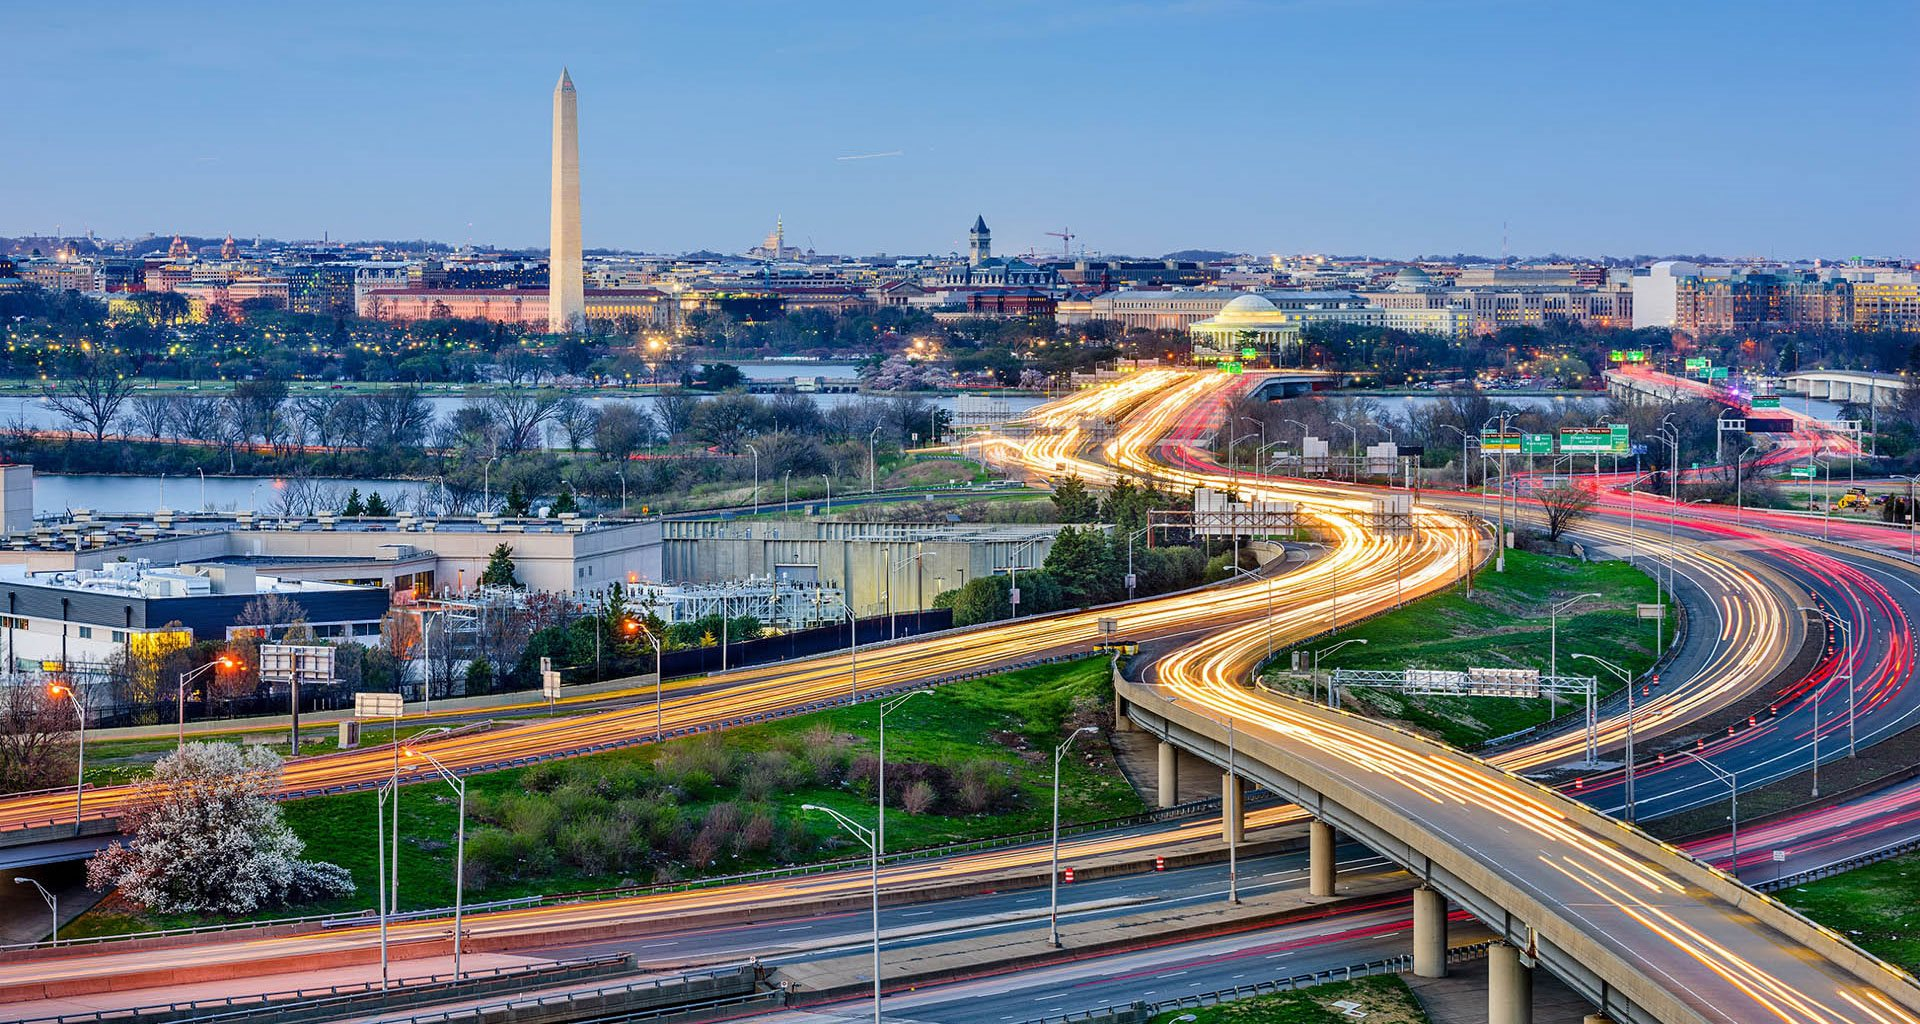 Panoramic photo of Washington DC